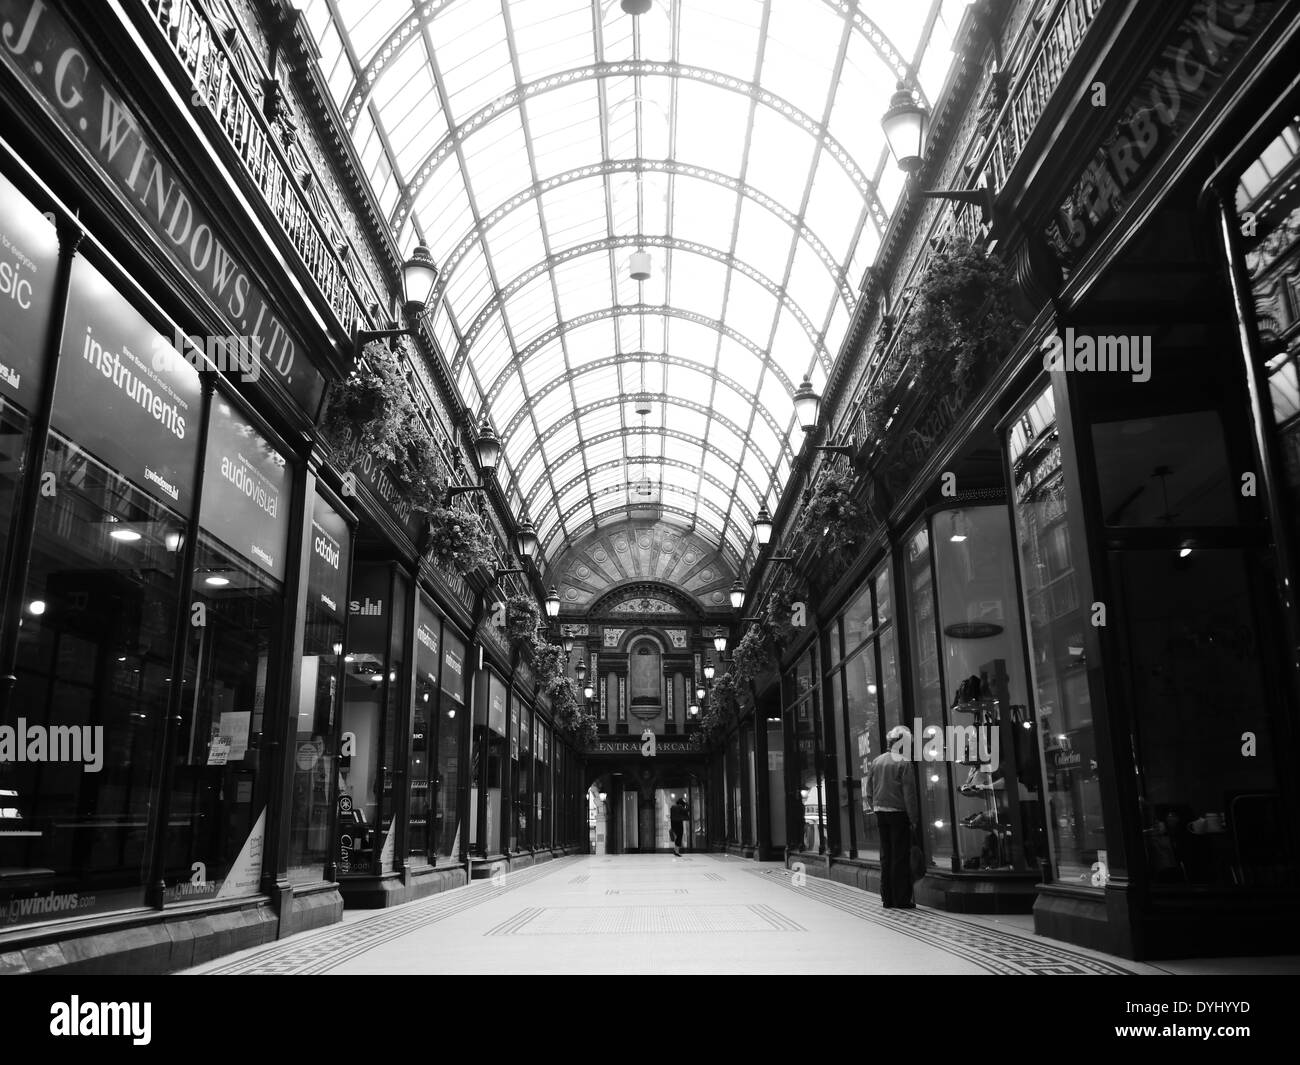 View of ornate historic Central Arcade (aka Windows Arcade), a popular shopping venue in Newcastle upon Tyne, England, UK - Stock Image